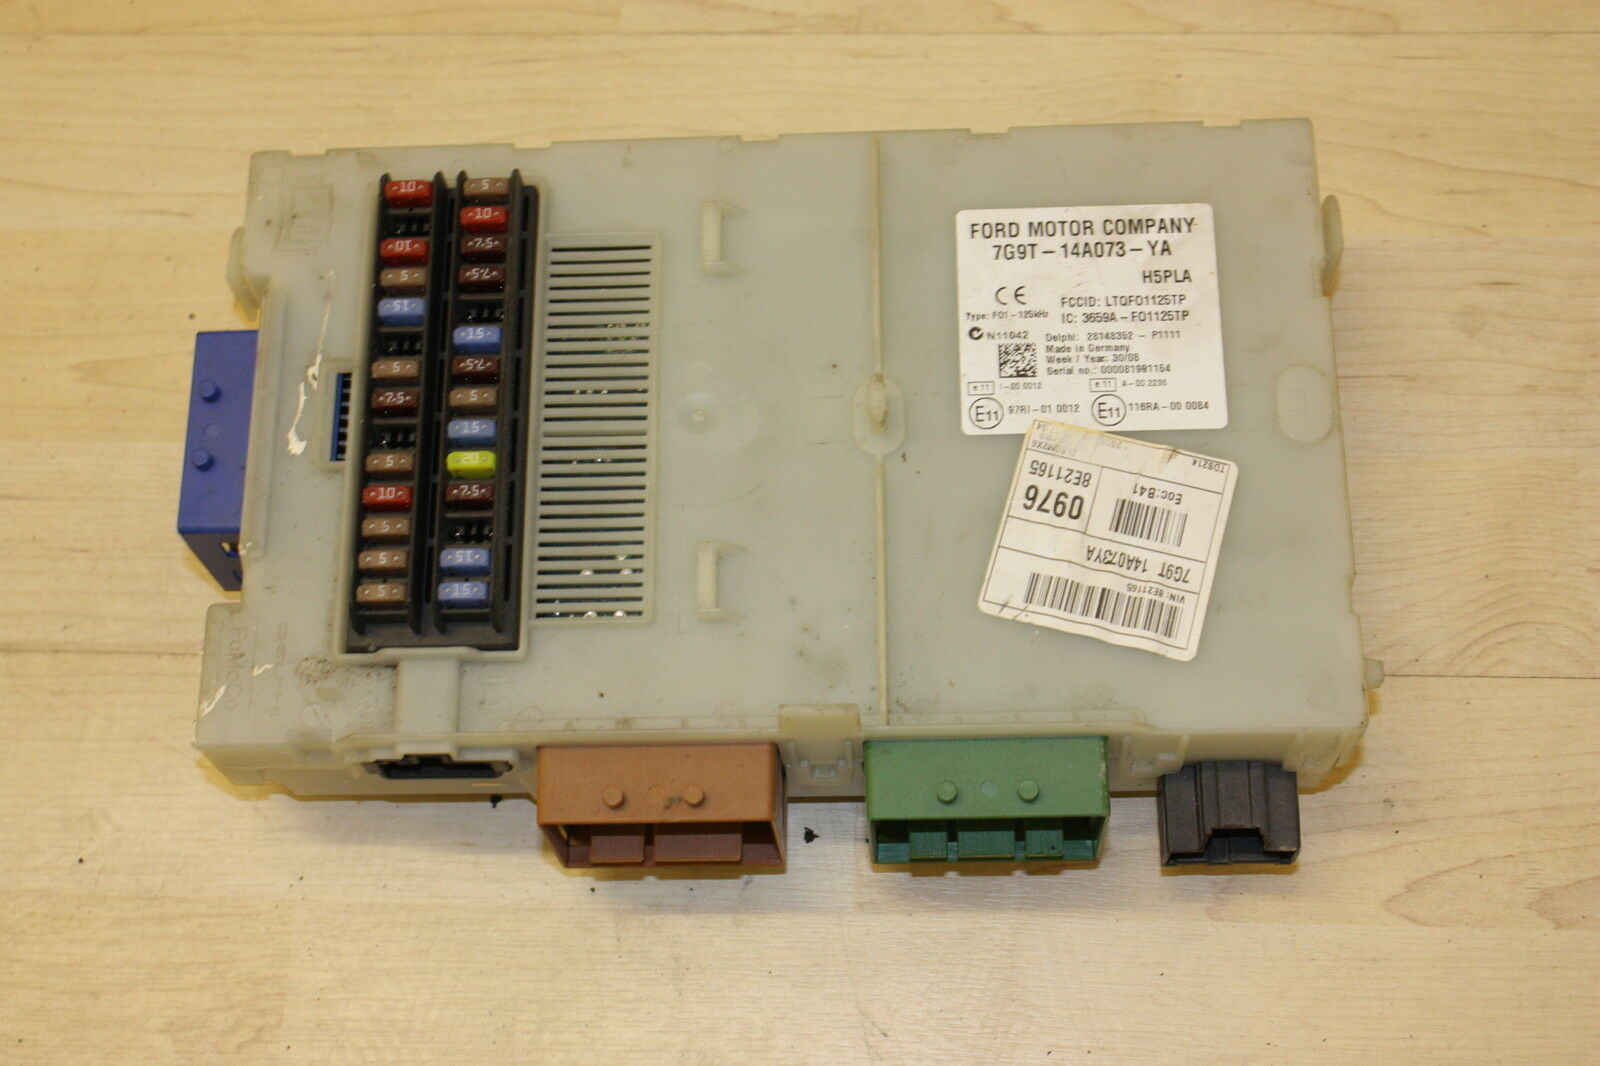 Ford Mondeo Mk4 20 Tdci Body Control Module Fuse Box Bcm 7g9t 555 1 Of 1free Shipping